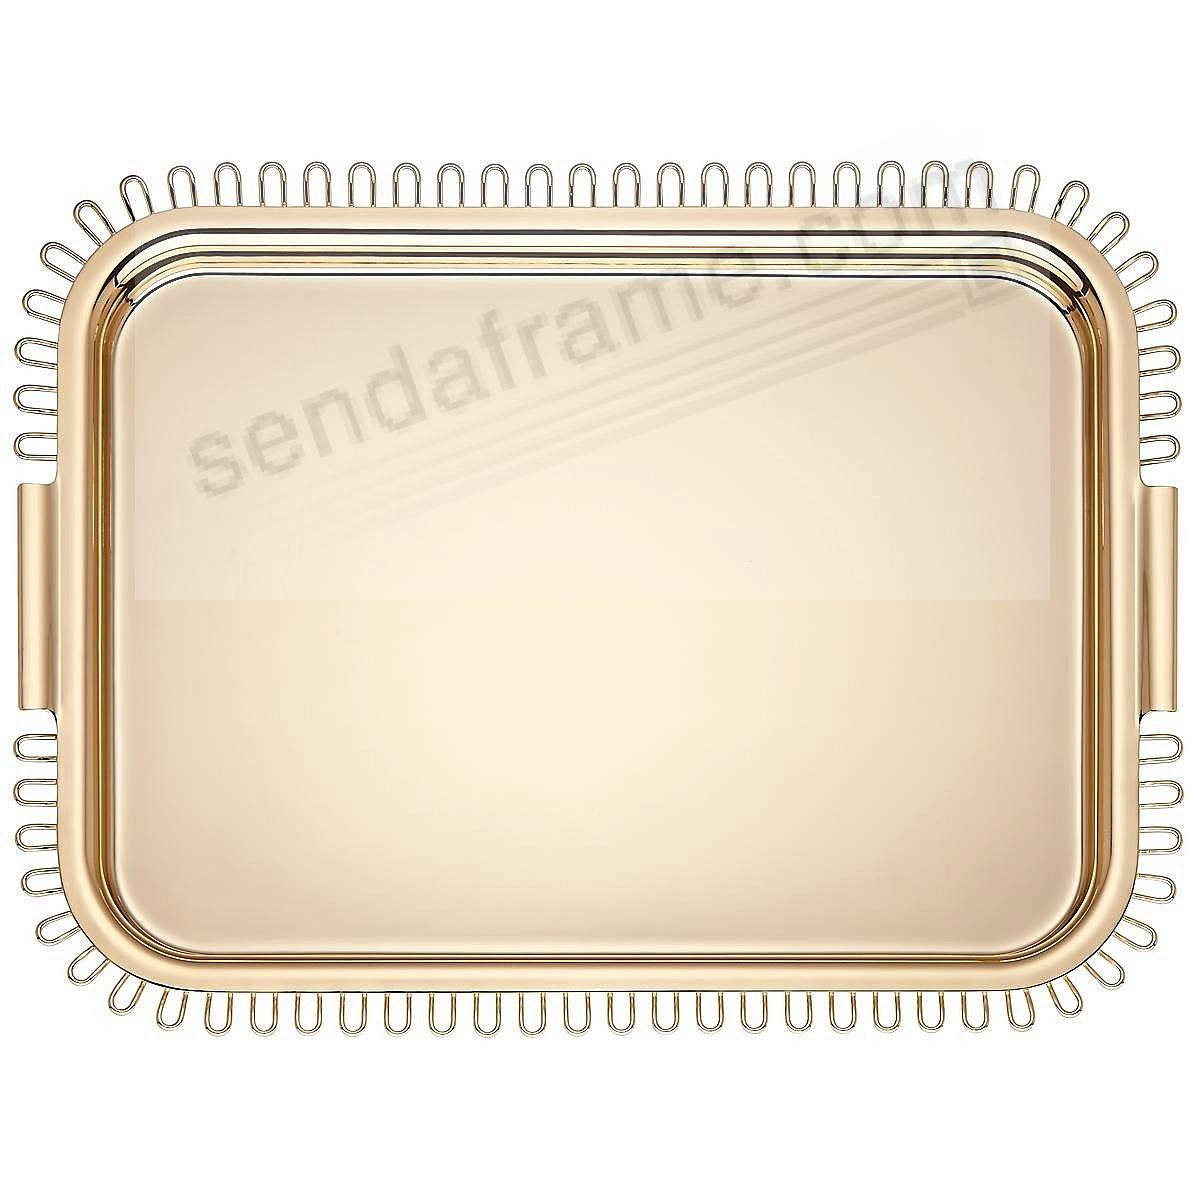 The KEATON STREET GOLD SERVING TRAY (LG) by kate spade new york®